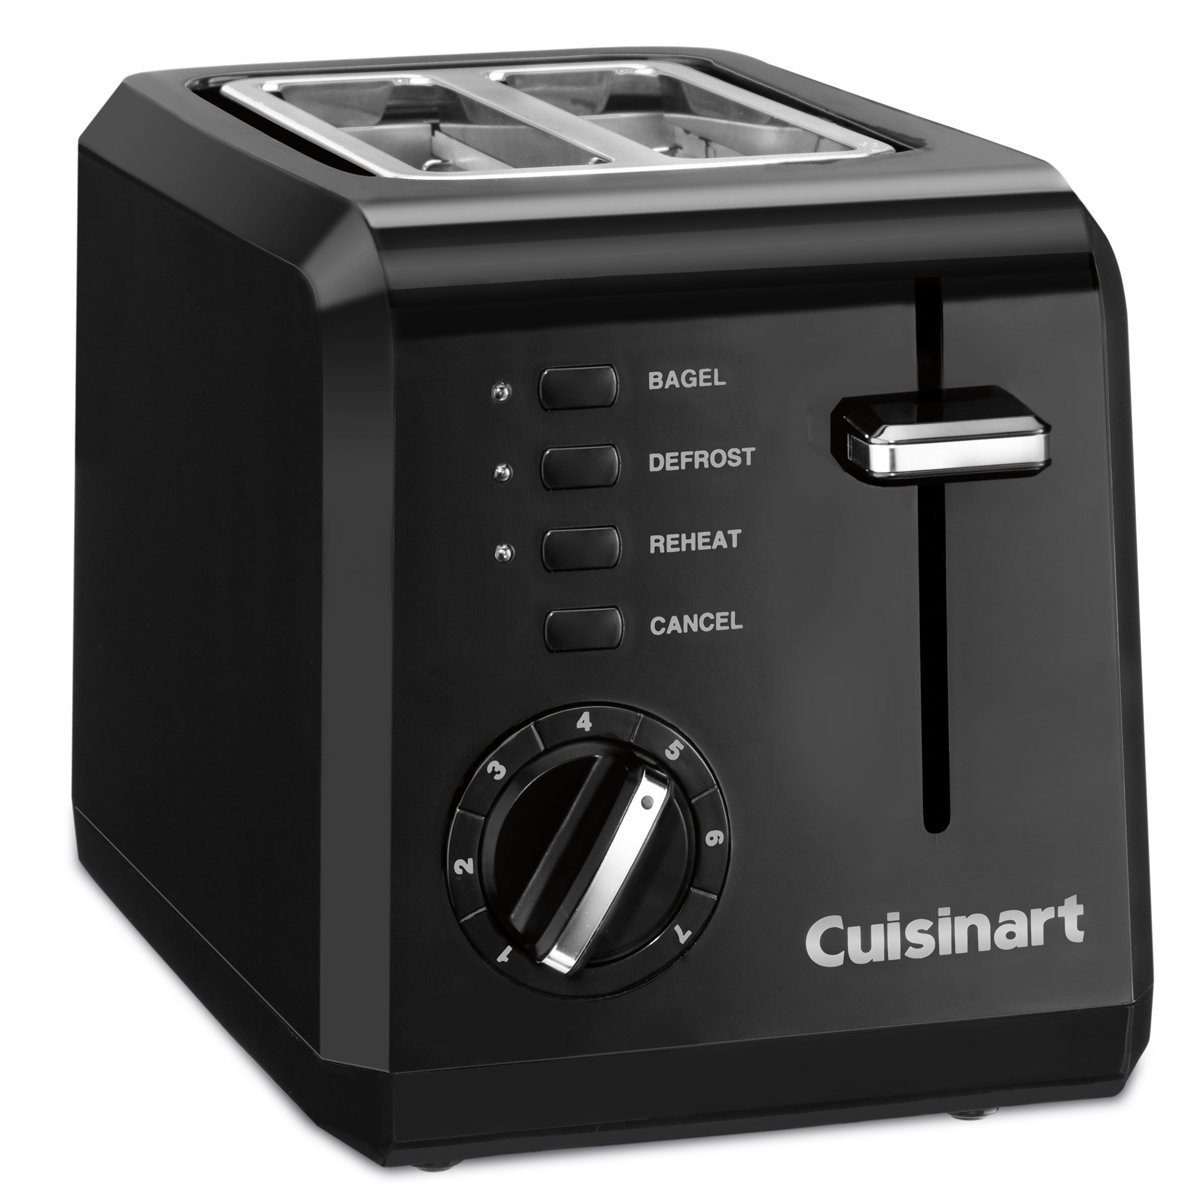 Cuisinart CPT-122 Compact 2-Slice Toaster - Black (Certified Refurbished)